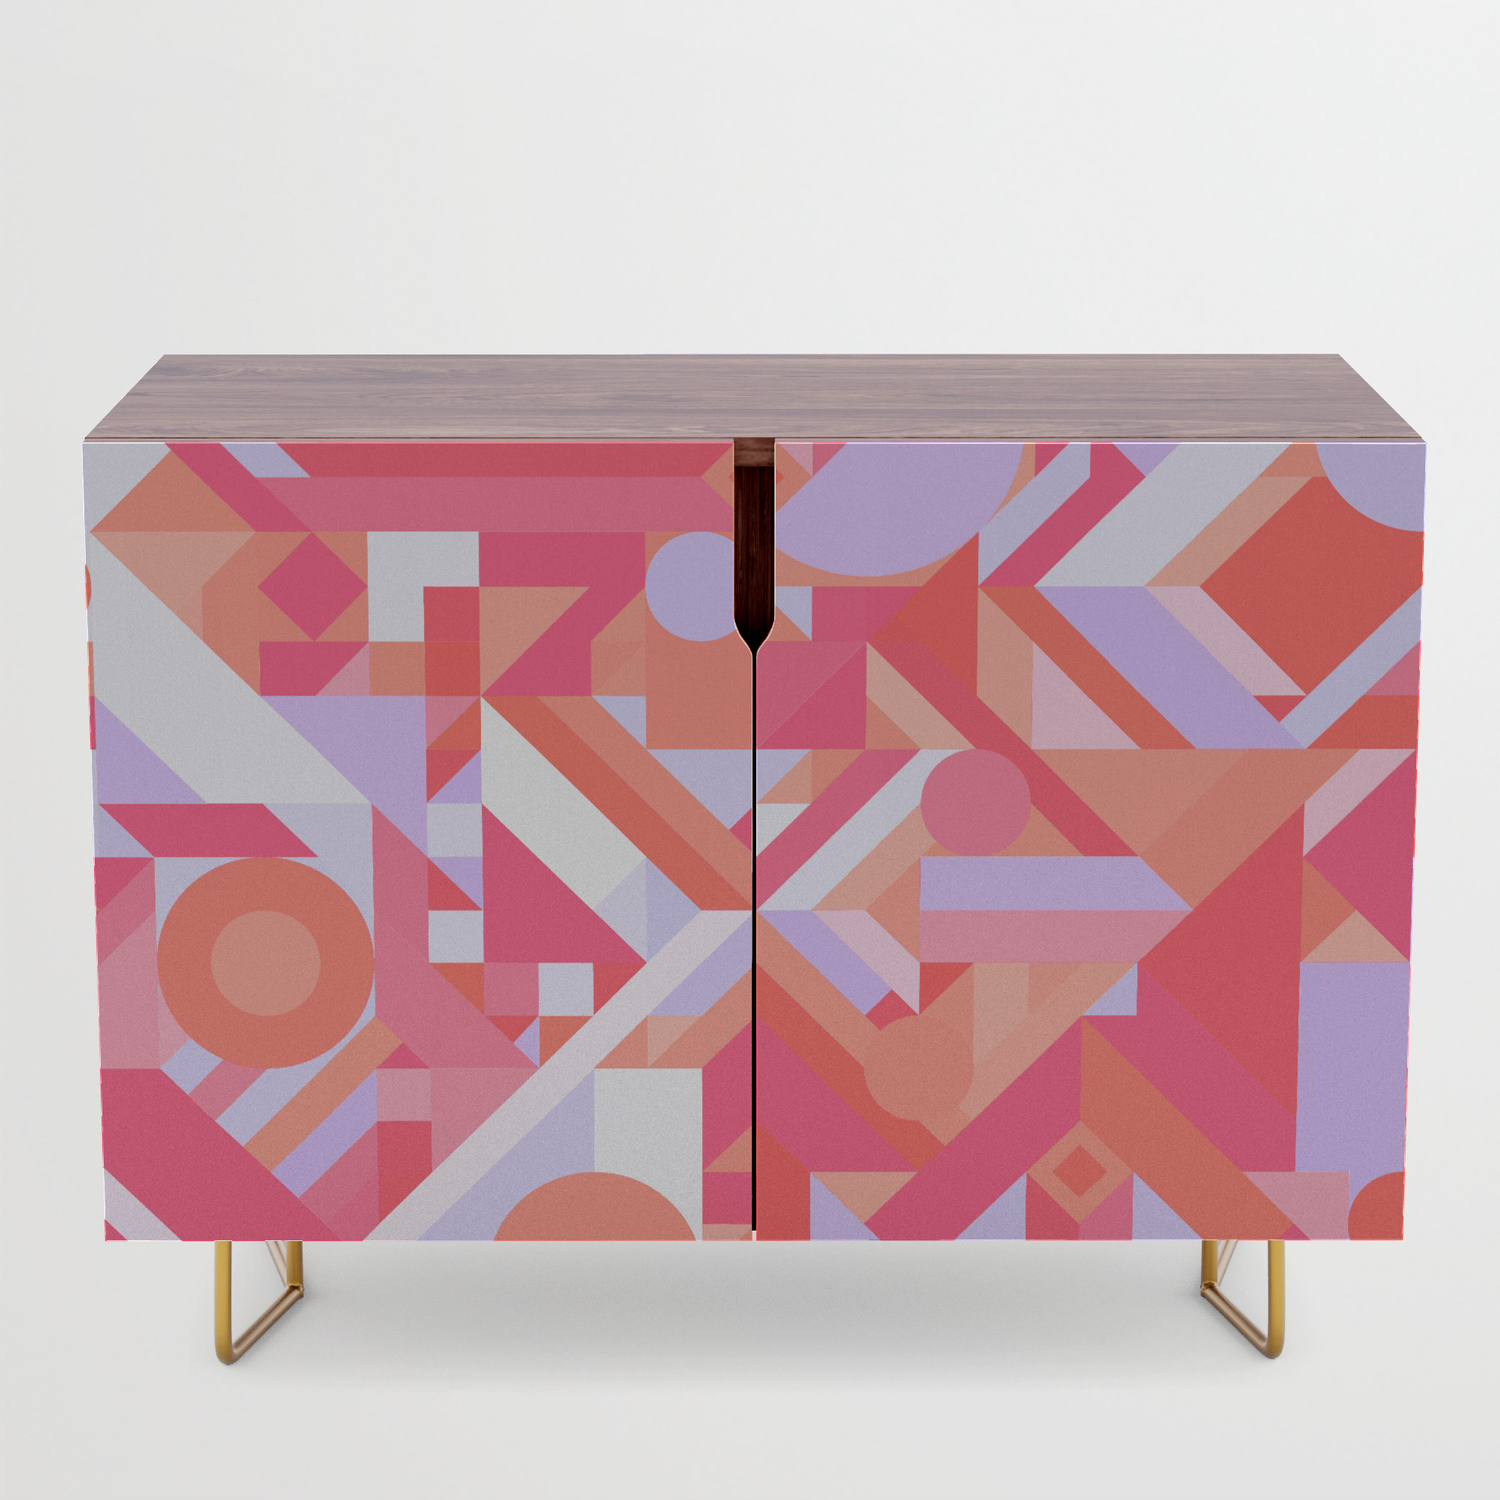 Geometry Shapes Pattern Print (Warm Red Lavender Color Scheme) Credenza With Regard To Geometric Shapes Credenzas (View 15 of 20)